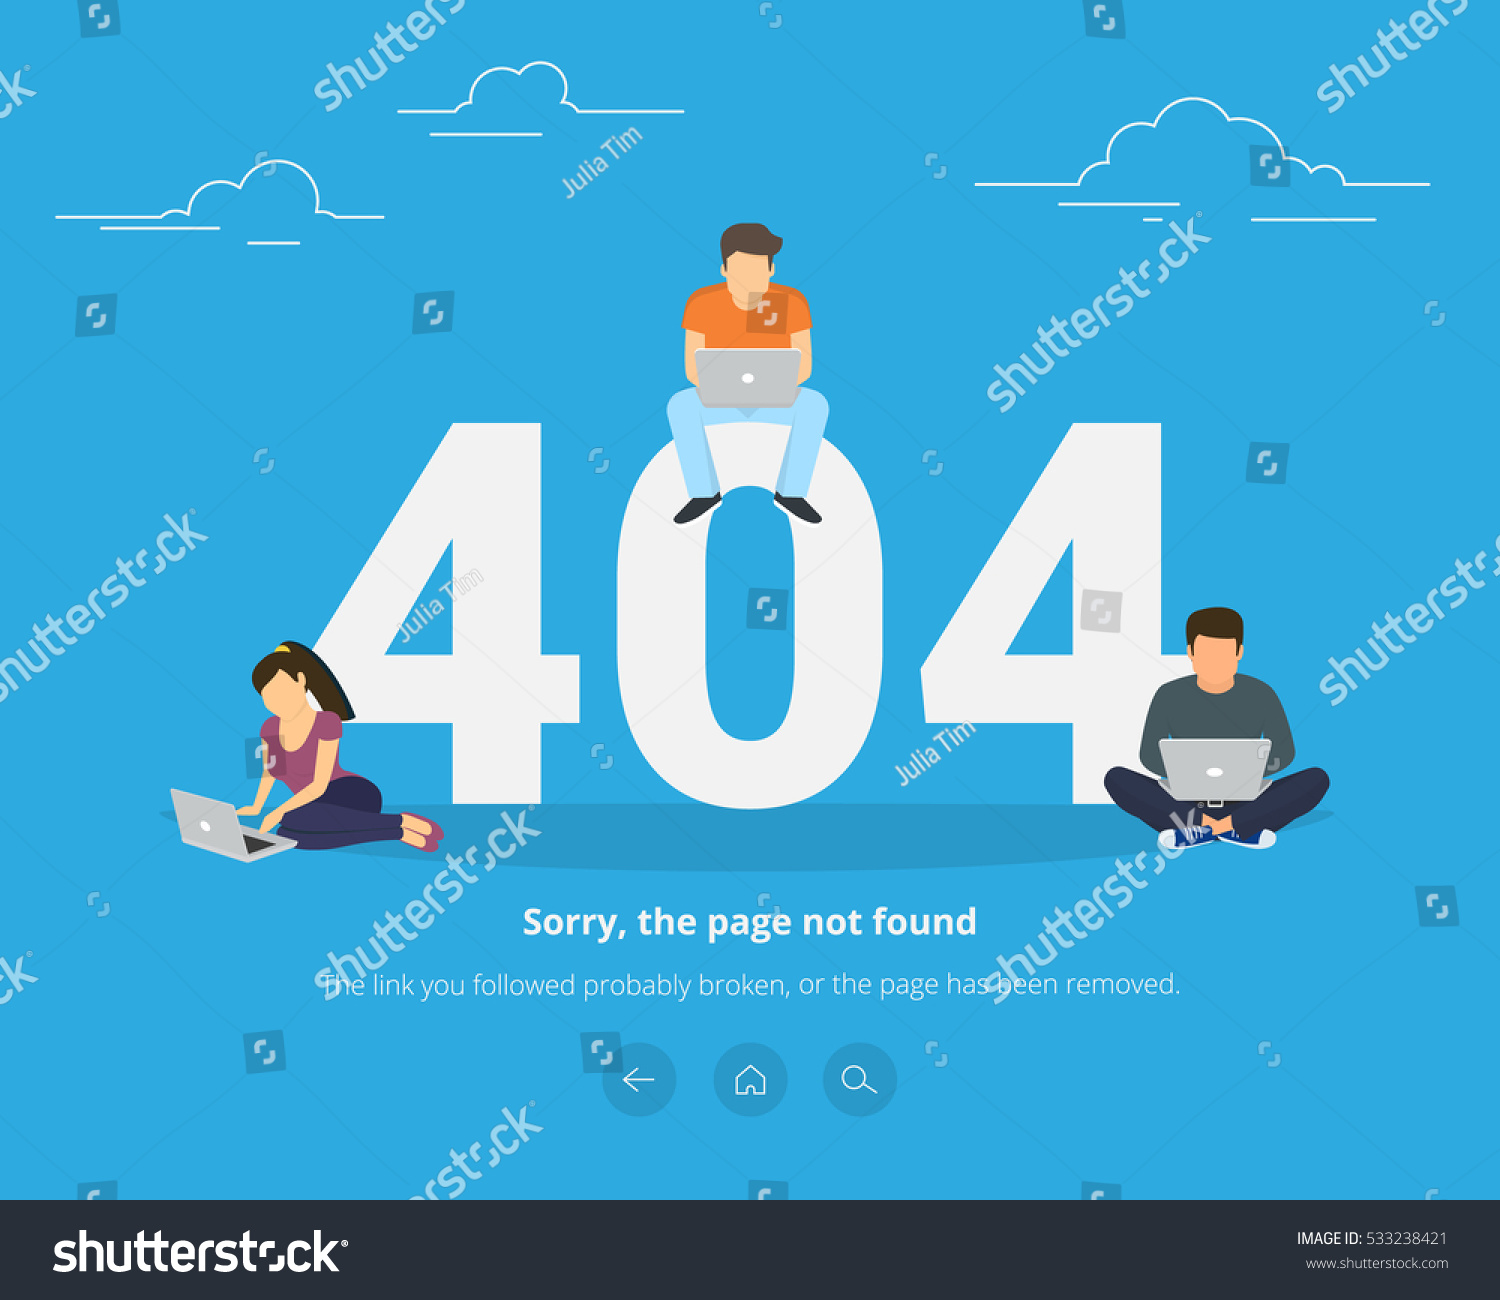 Background image 404 not found - 404 Error Page Not Found Concept Illustration Of People Using Laptops Having Problems With Website